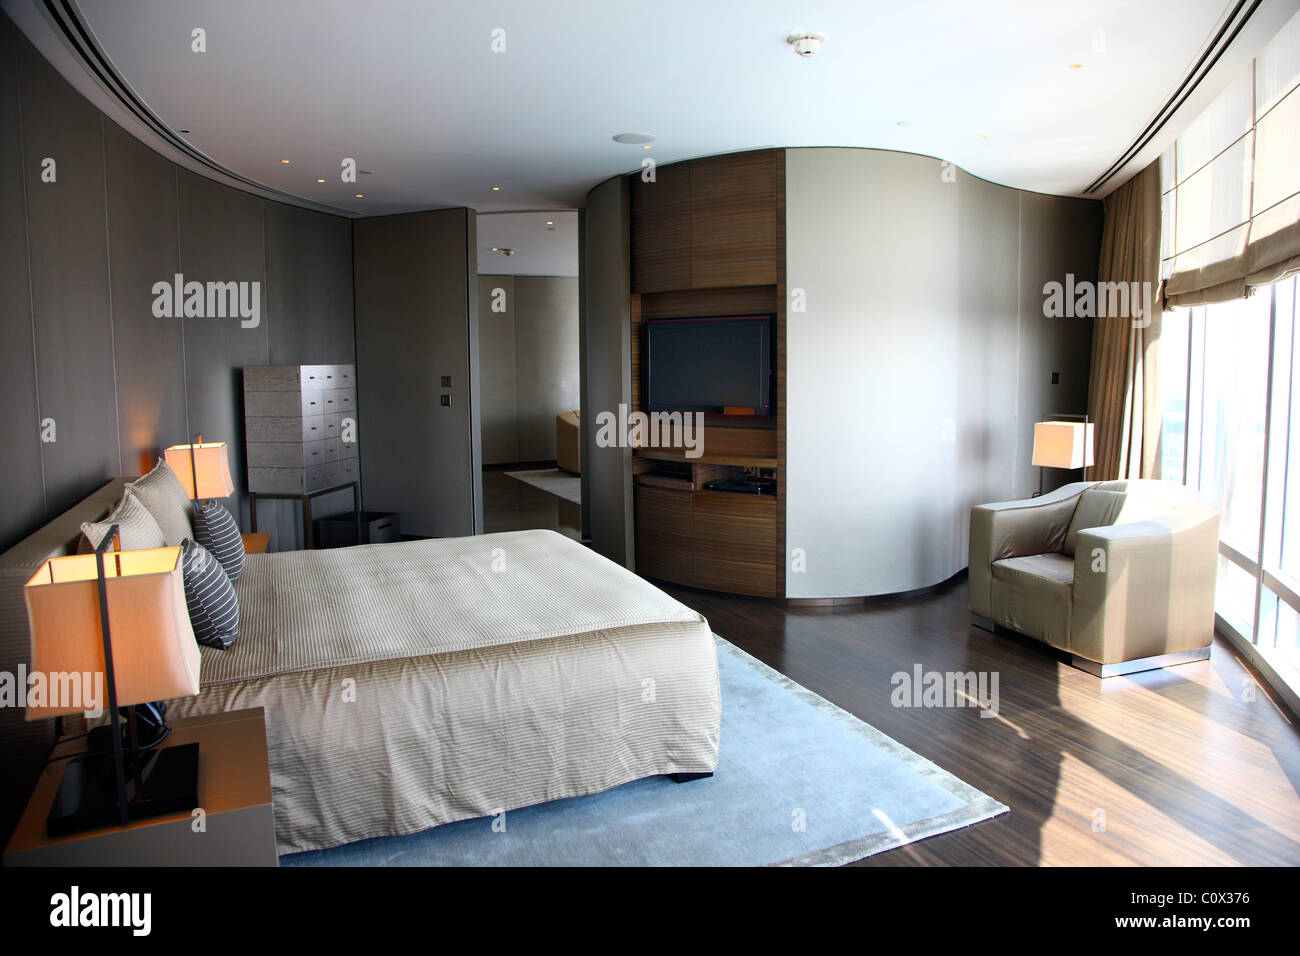 Room Armani Stock Photos Room Armani Stock Images Alamy - Armani bedroom design